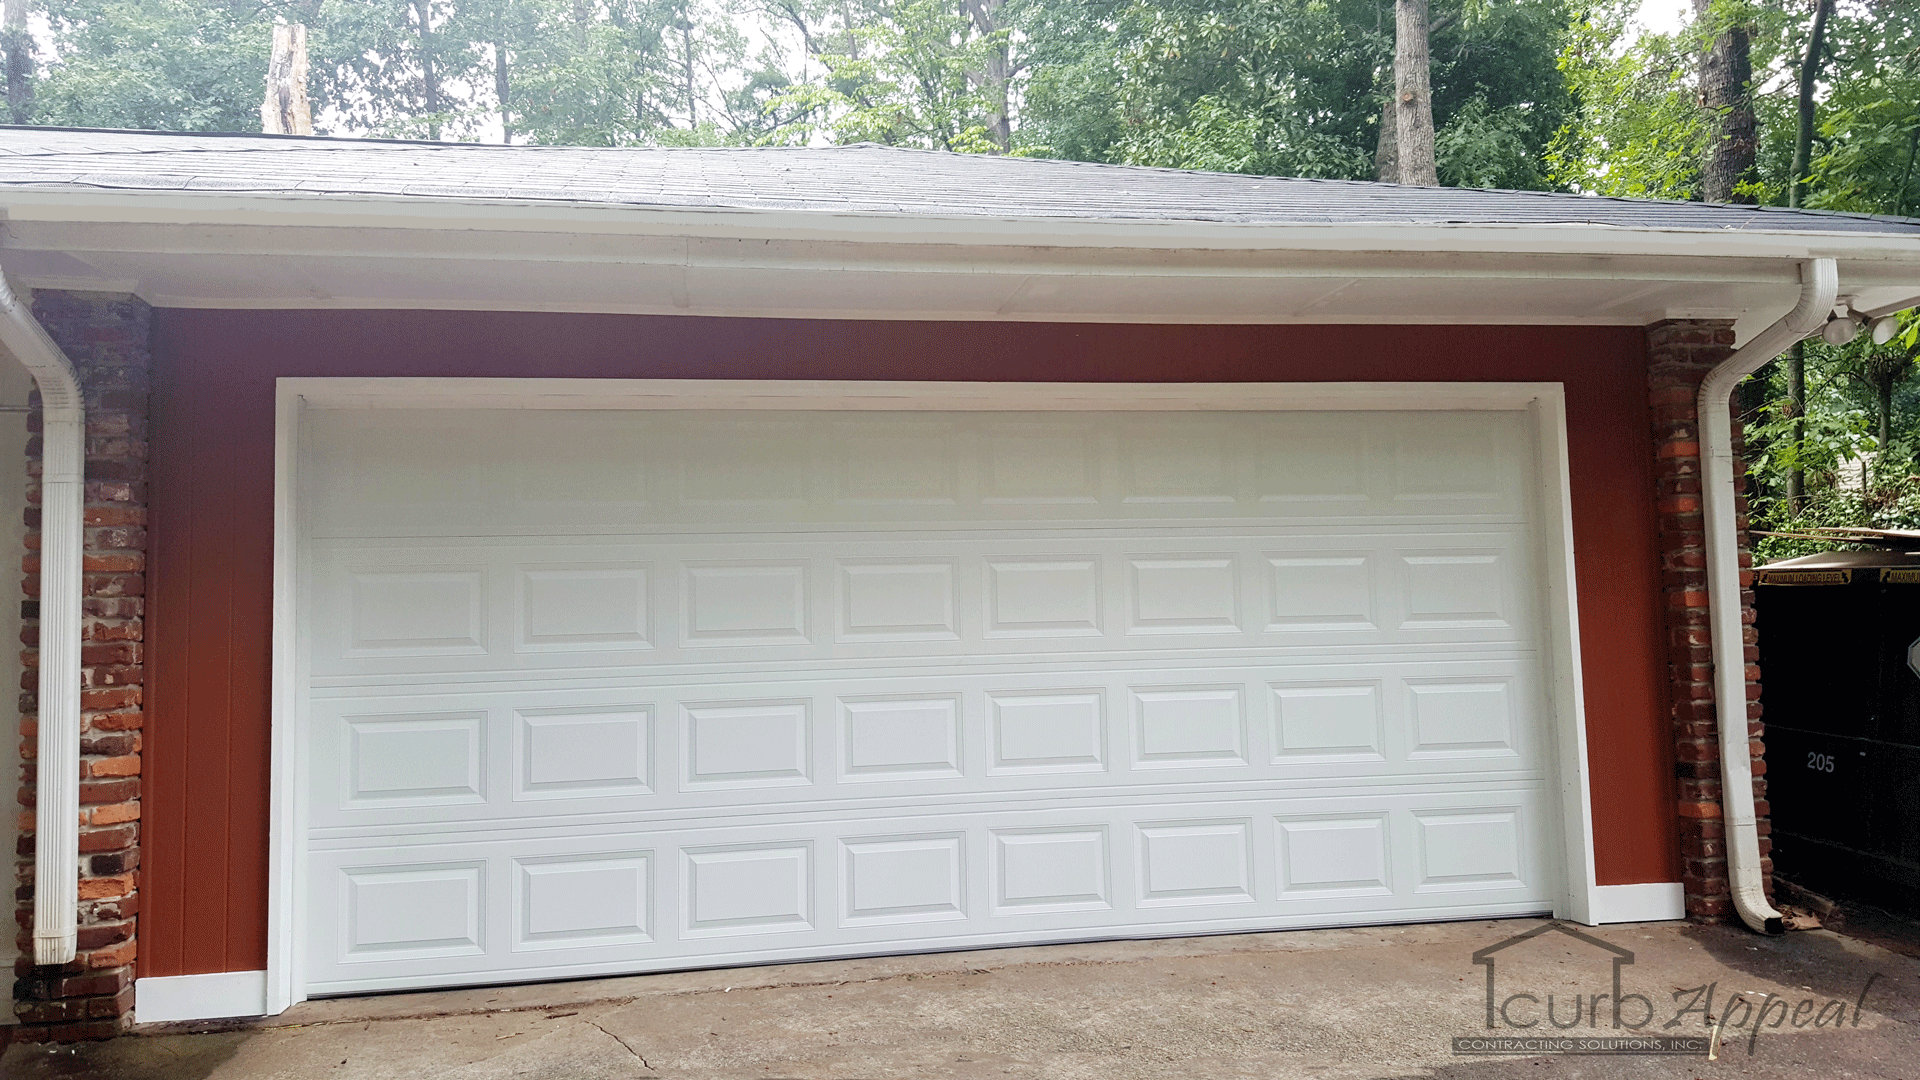 A white garage door installed after converting a carport into a garage.